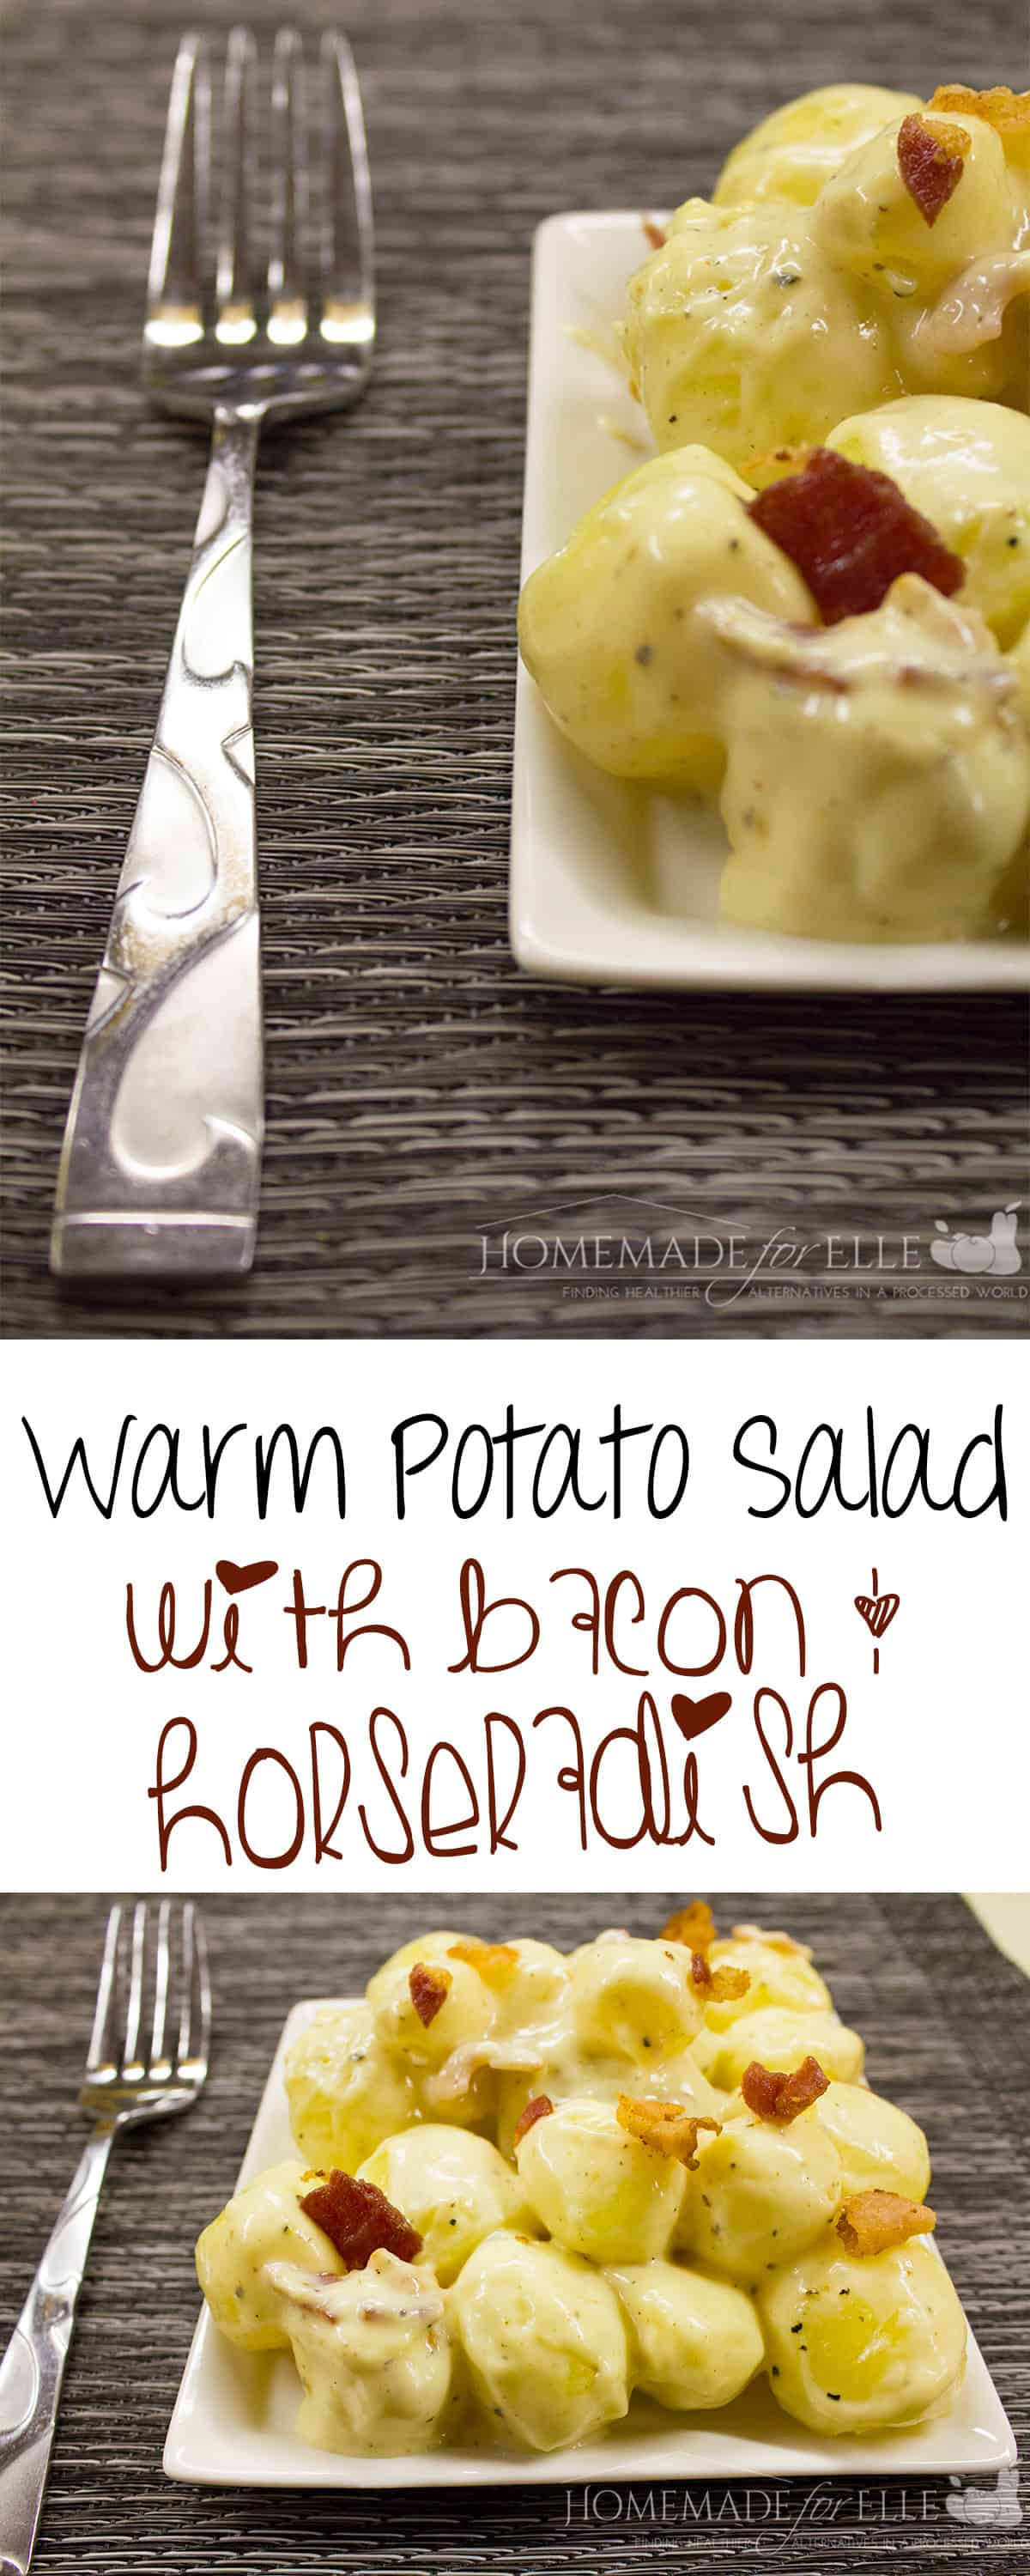 warm potato salad - Homemade for Elle - Copy